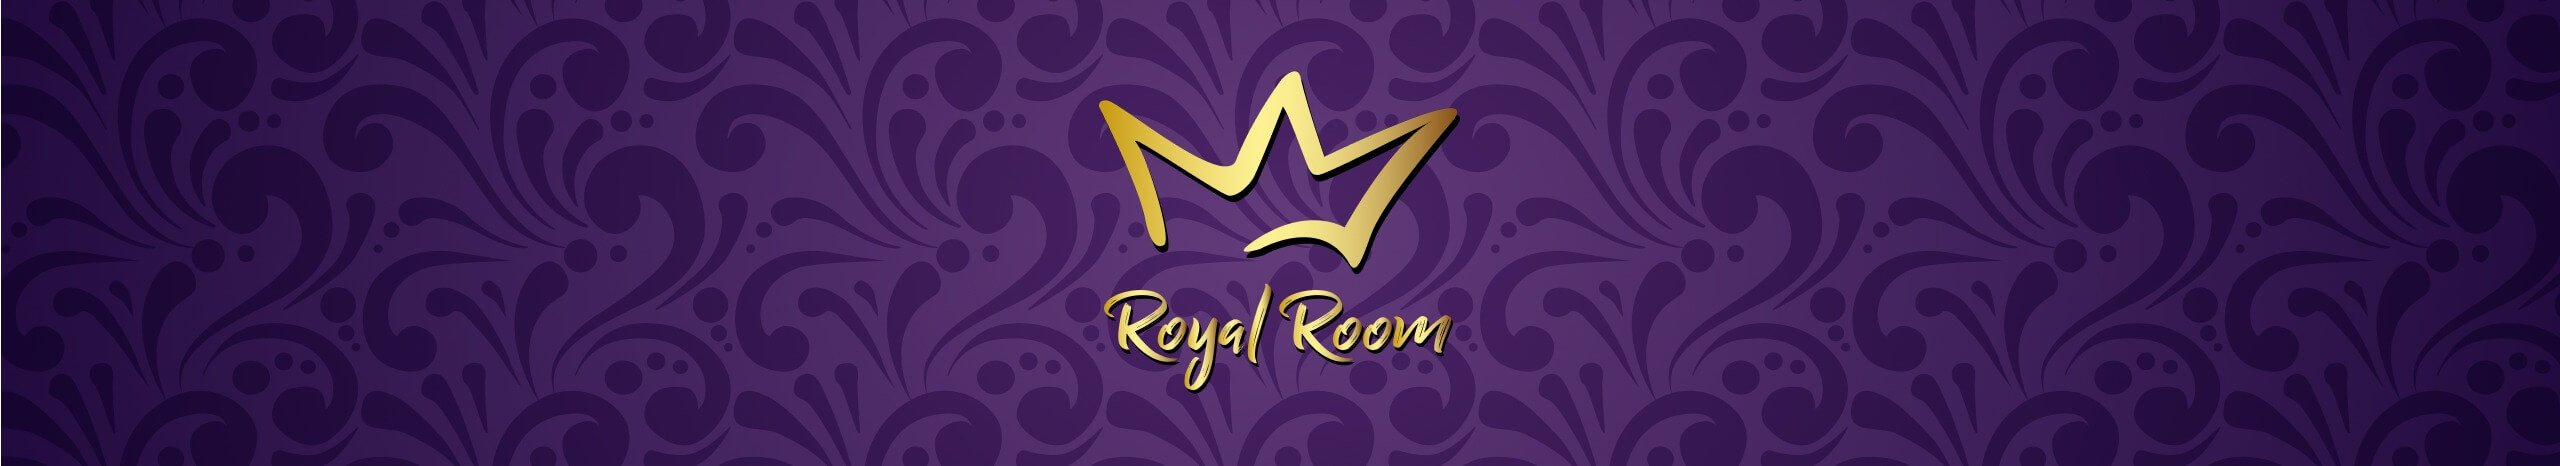 Ever wondered what it would be like to be treated like a royal? Look no further because in our Royal Room, you're our very own King or Queen.